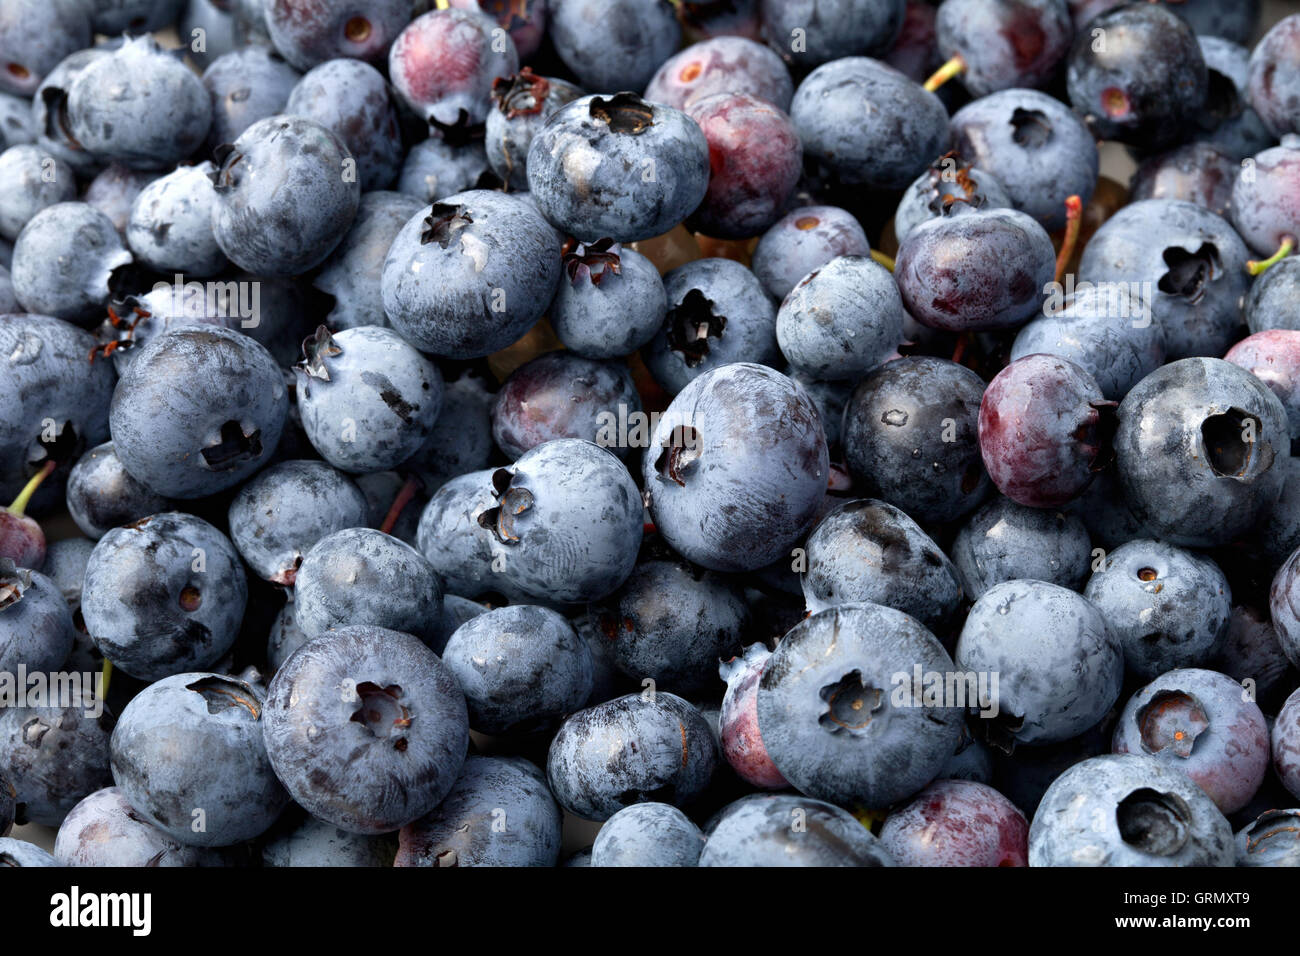 Closeup image of delicious blueberries background texture. - Stock Image